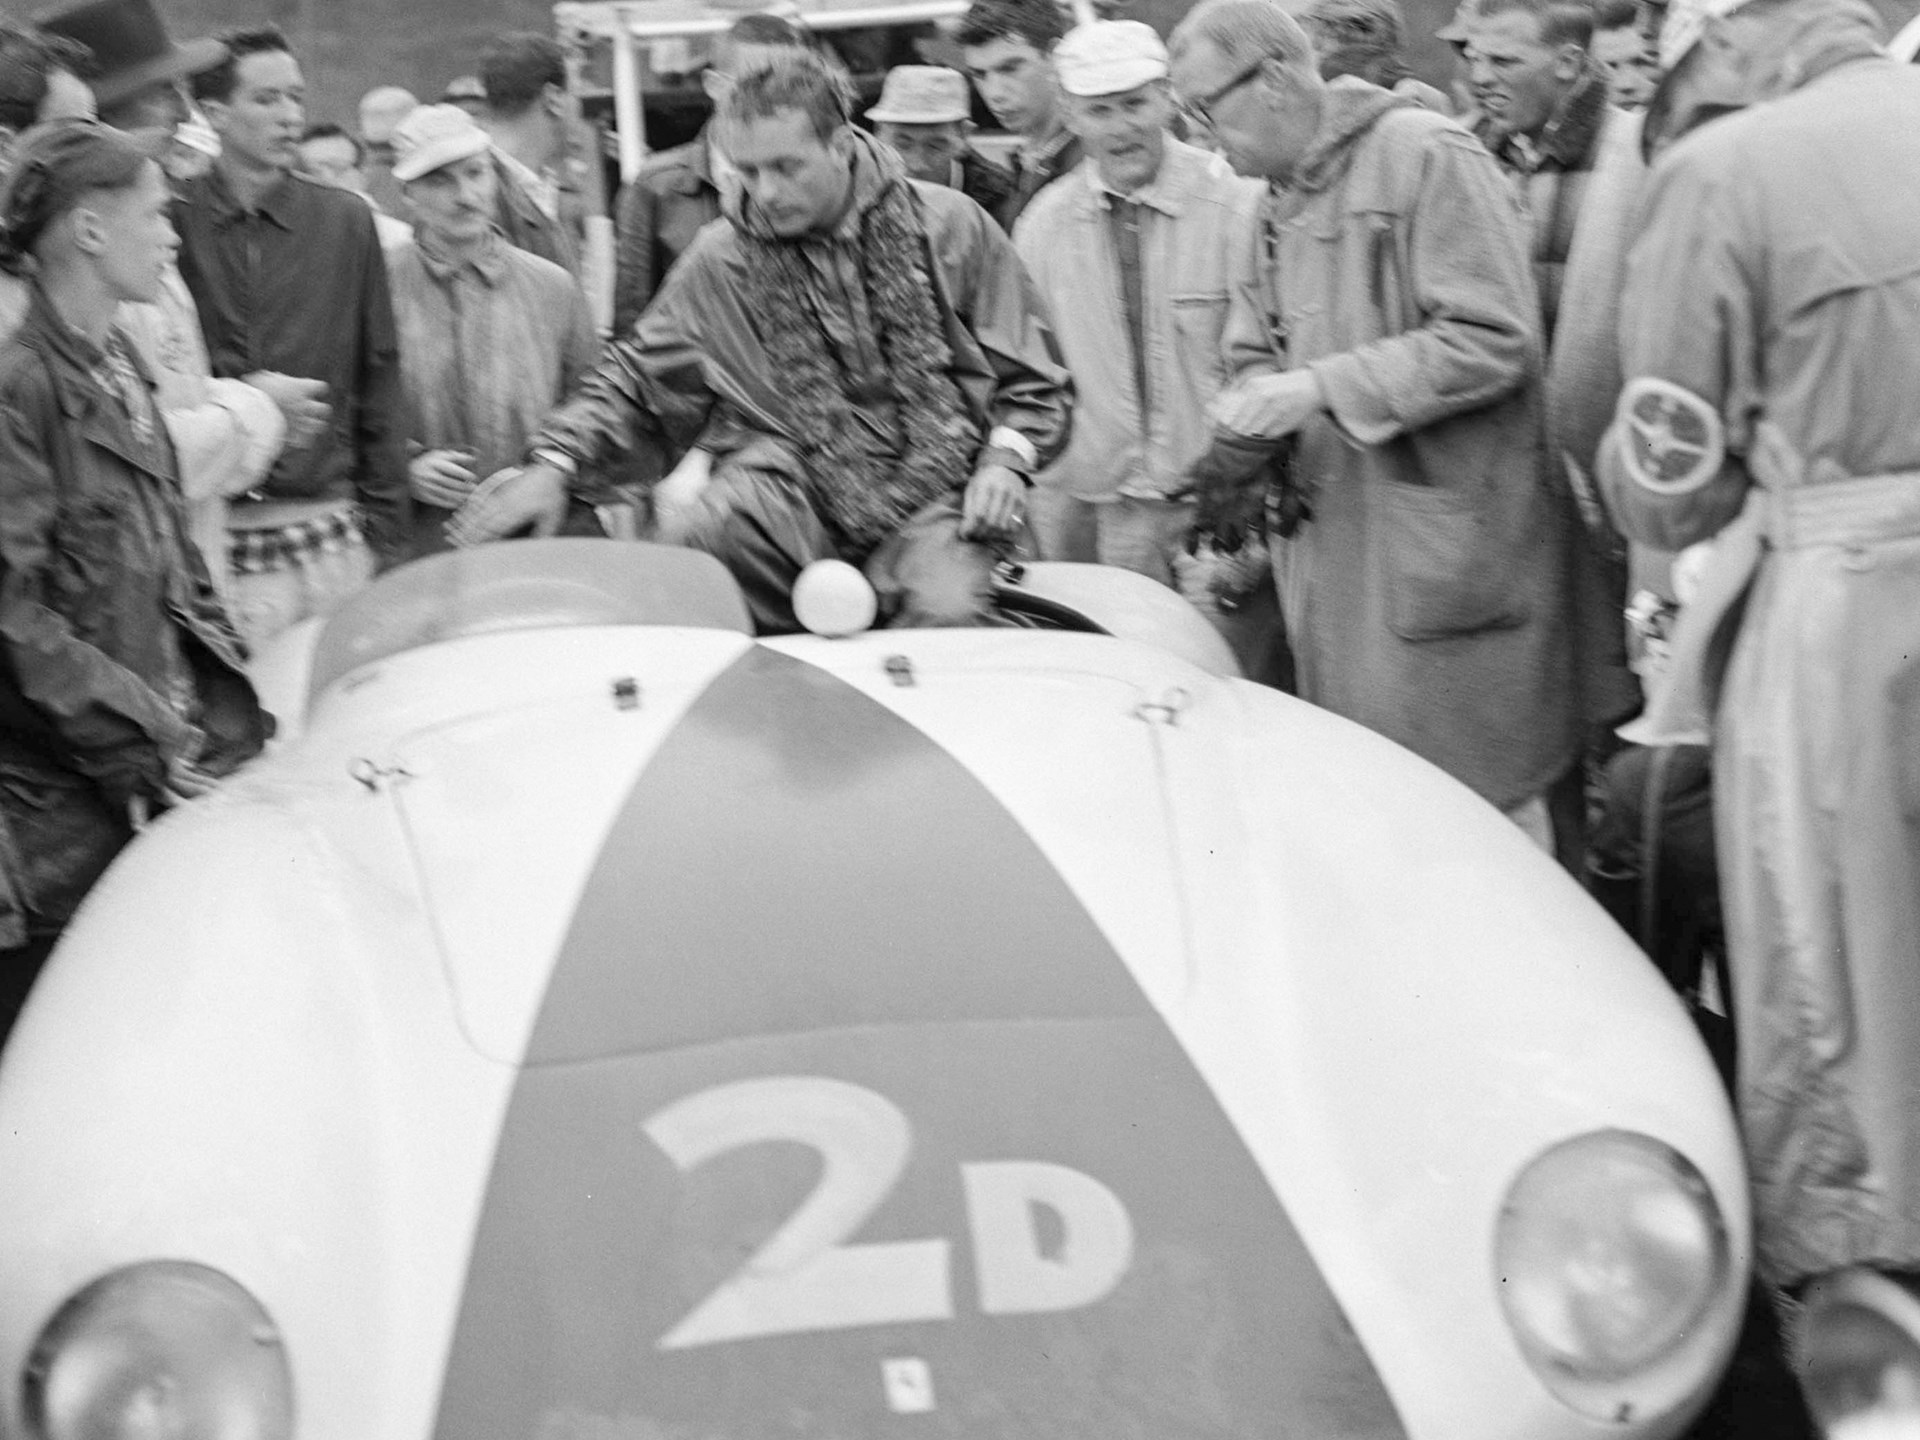 Phil Hill celebrates his success atop the 750 Monza following his win at the Del Monte Trophy Race at Pebble Beach in 1955.